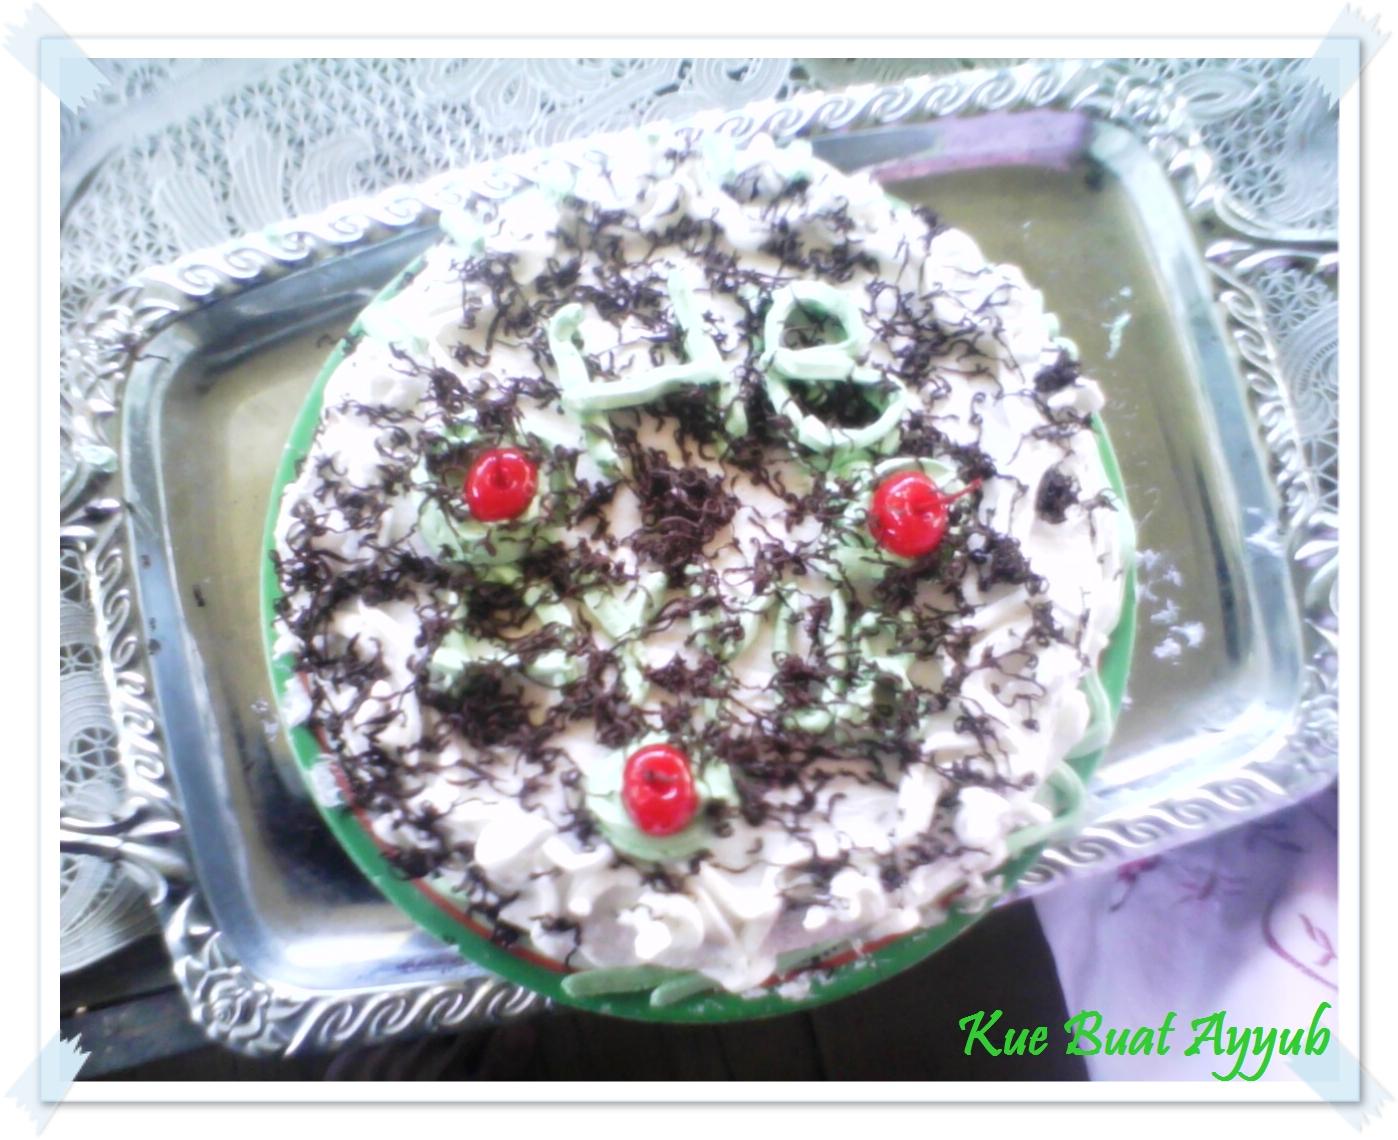 Kue Buatan Tangan.Ku.. :) Just For You